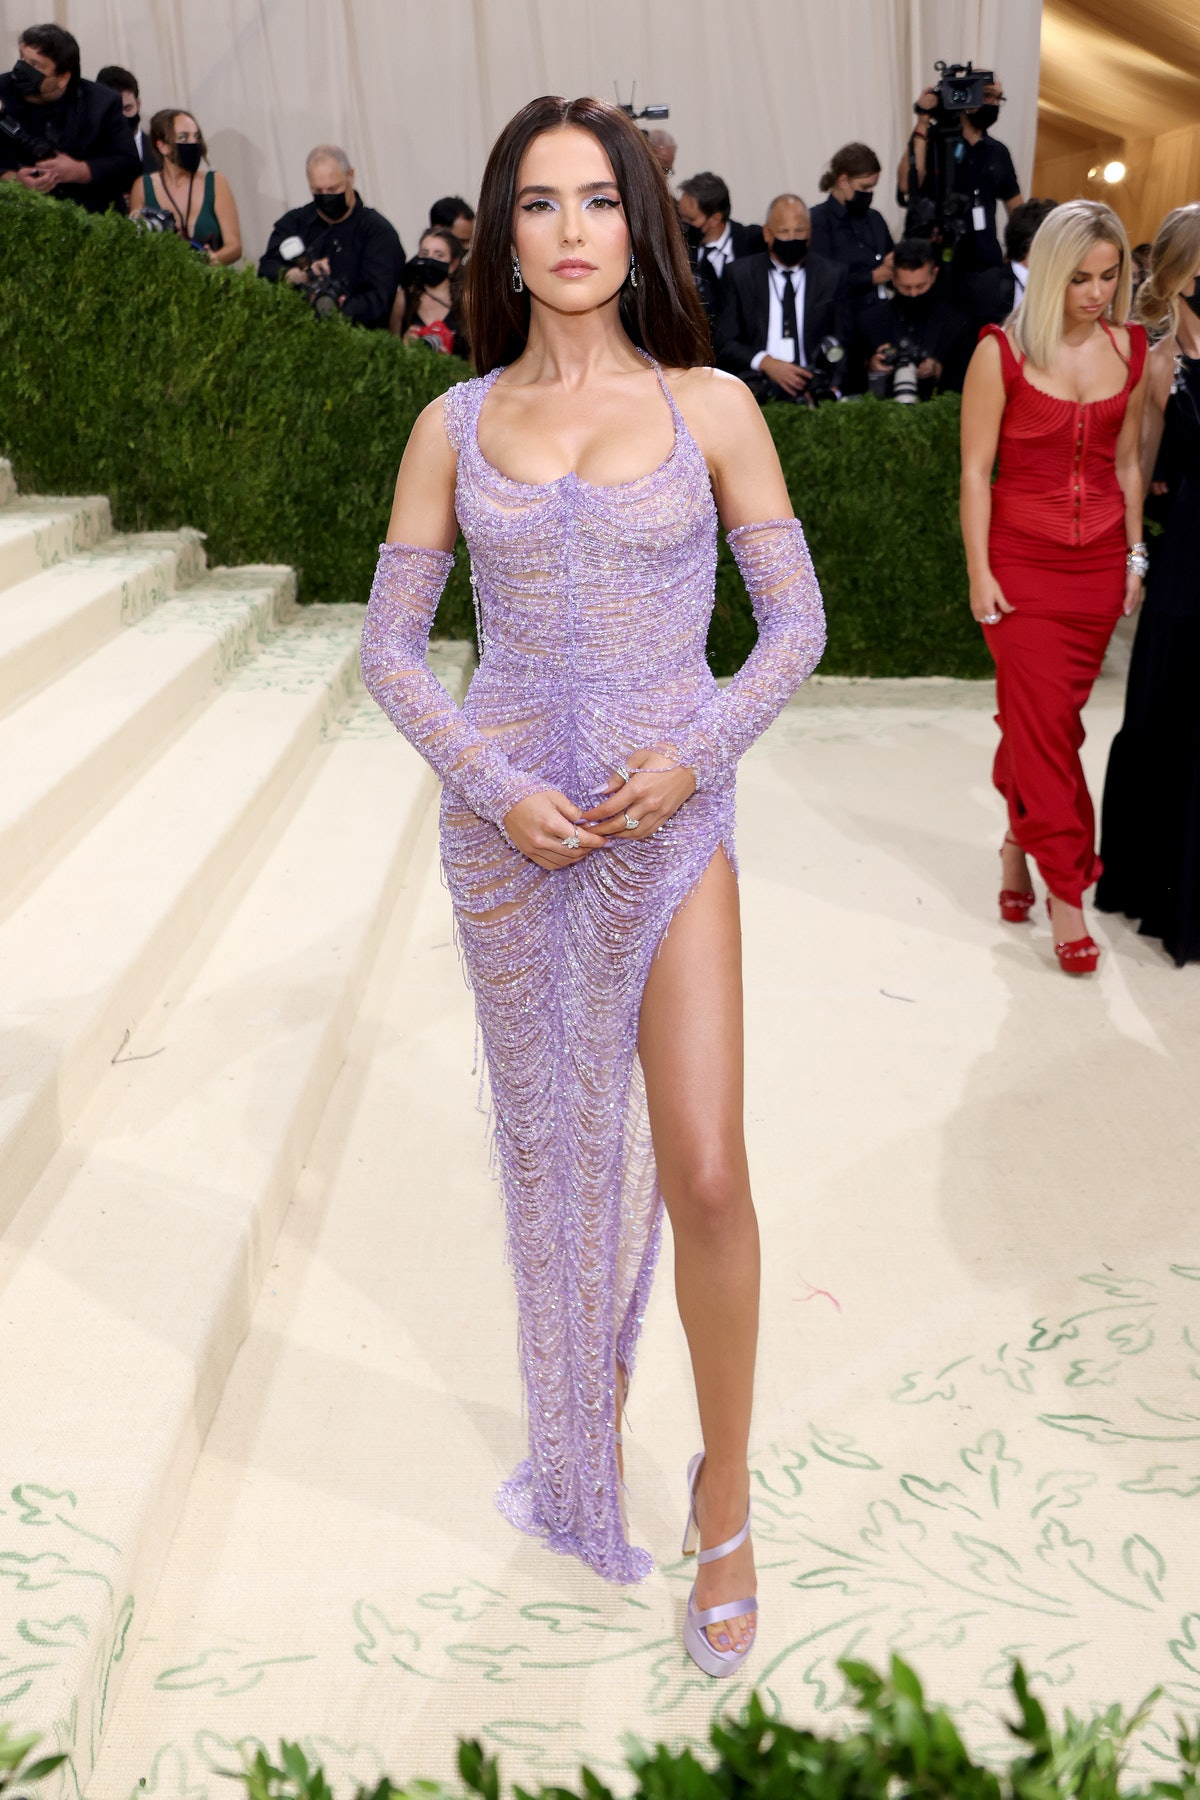 Zoey Deutch attends The 2021 Met Gala Celebrating In America: A Lexicon Of Fashion at Metropolitan M...